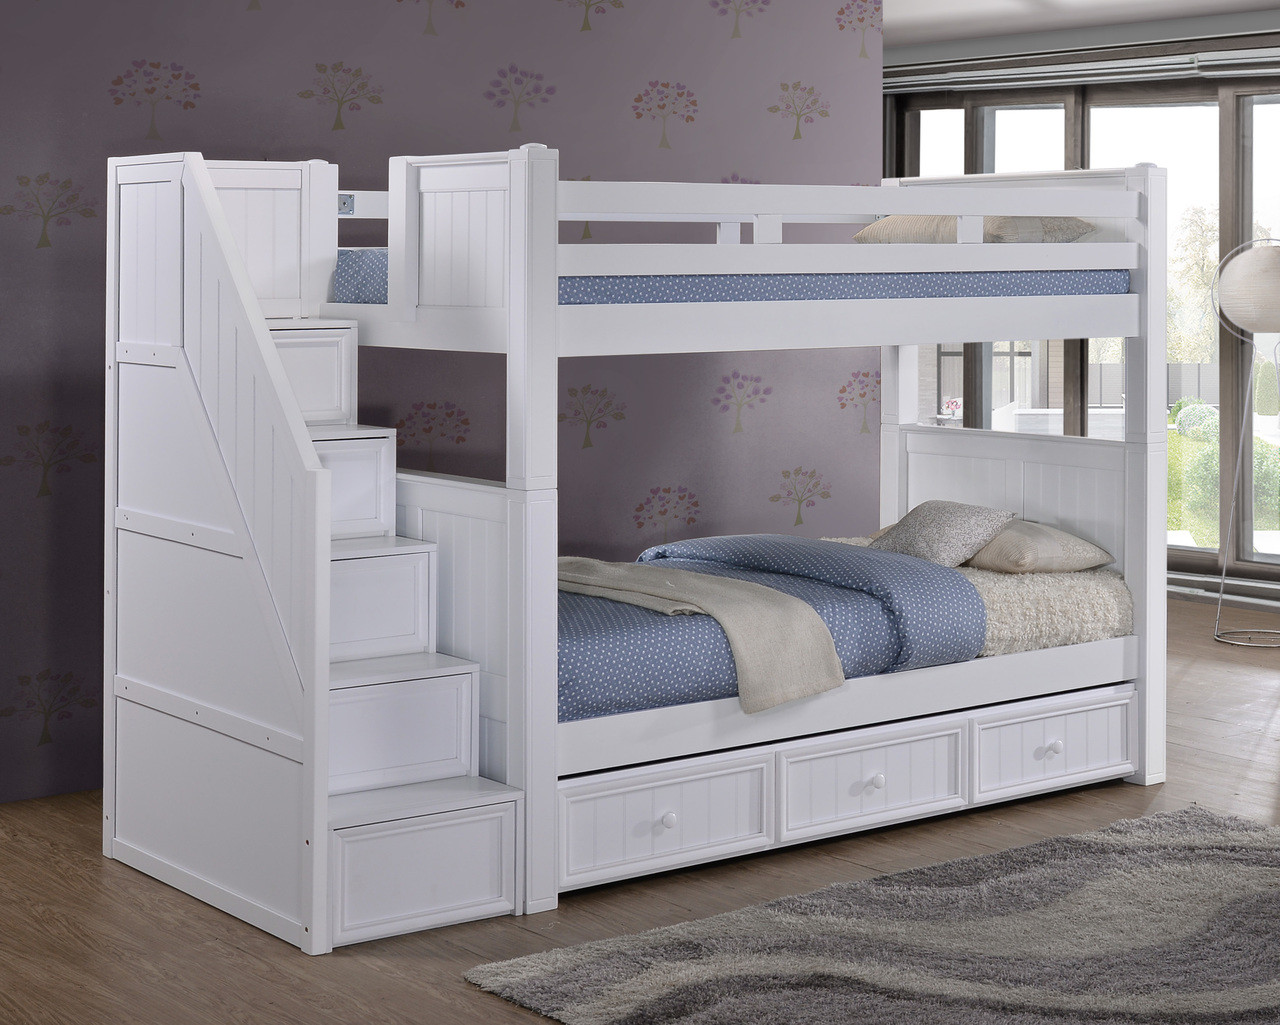 Teal Dillon Twin Bunk Bed Drawers Wood Loft Bed Queen Storage Stairs Dillon Twin Overtwin Bunk Bed Dillon Twin Over Twin Wood Bunk Bed Desk Reversible Storage Stairs Wood Loft Bed baby Wood Loft Bed